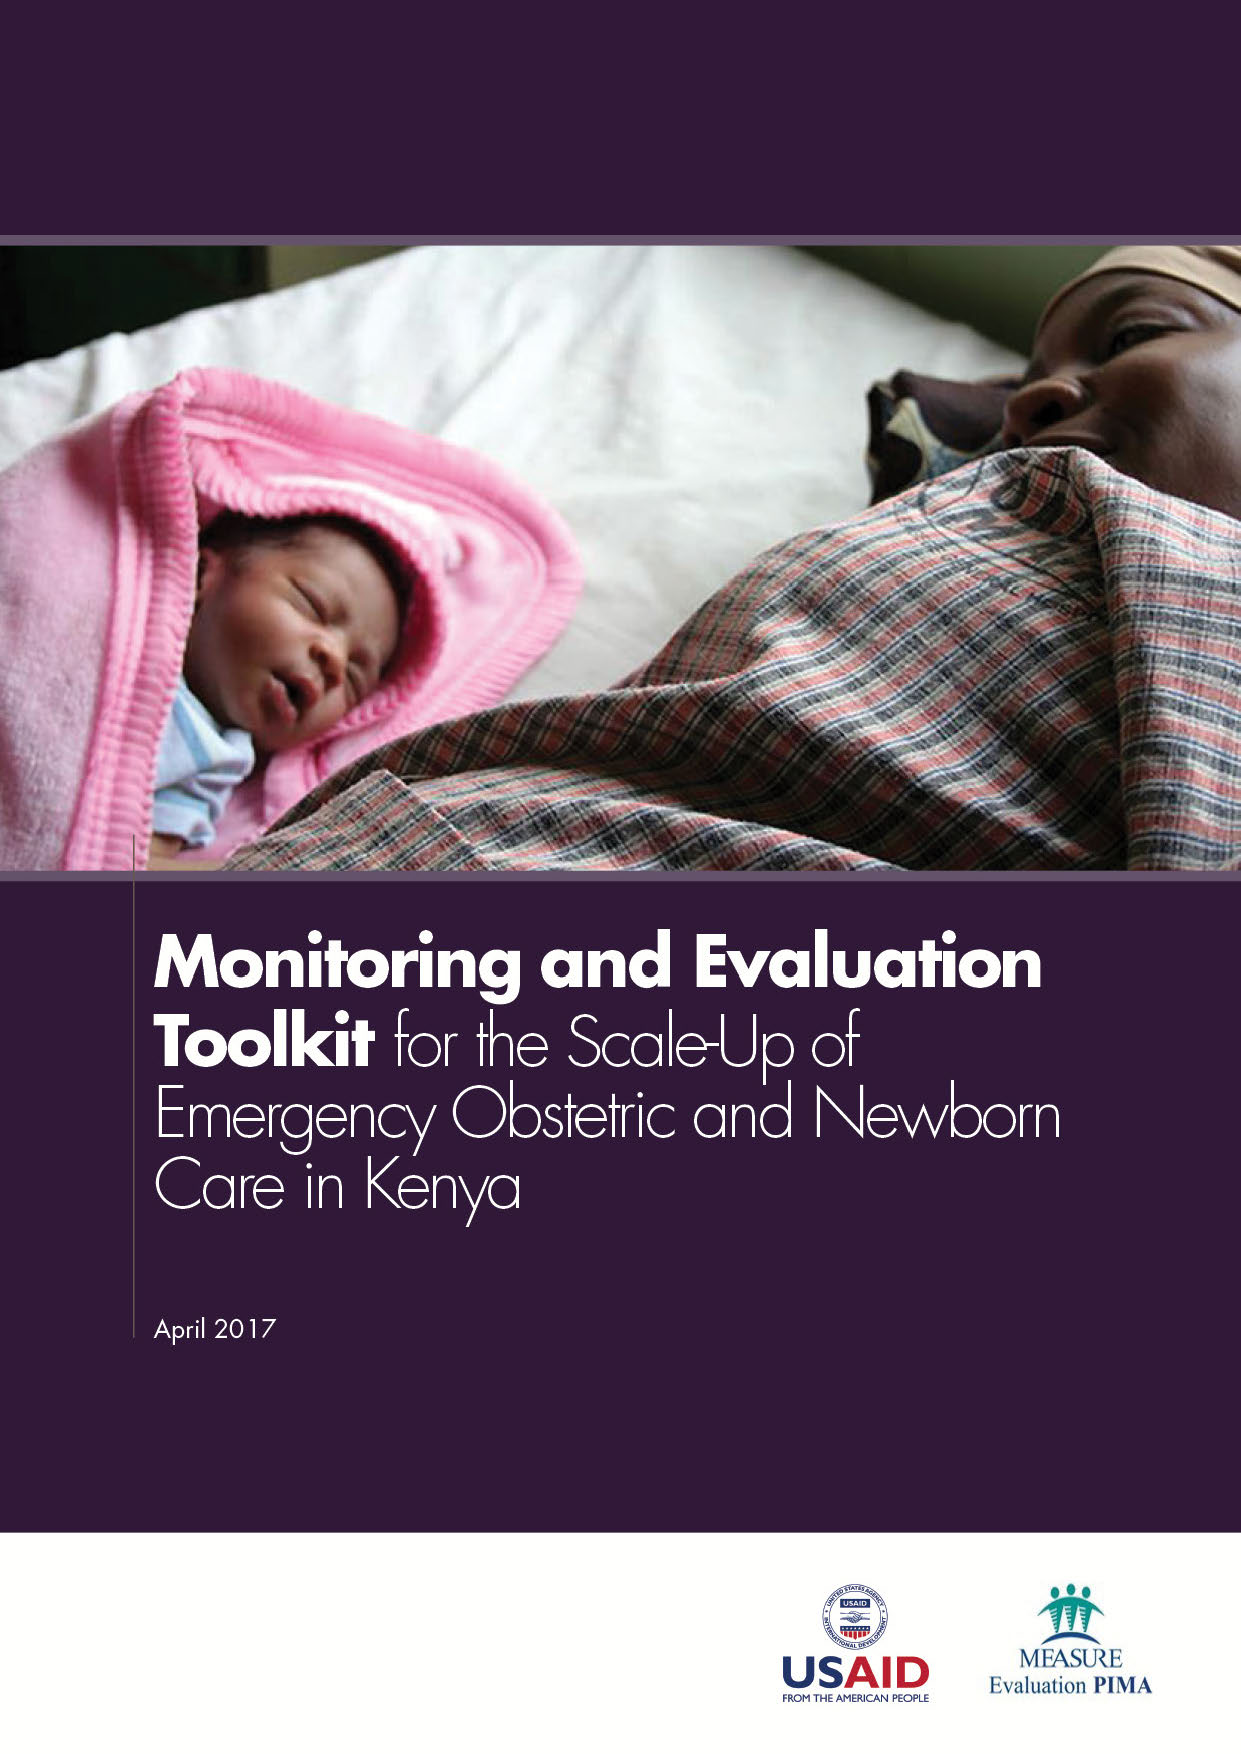 Monitoring and Evaluation Toolkit for the Scale-Up of Emergency Obstetric and Newborn Care (EmONC) in Kenya